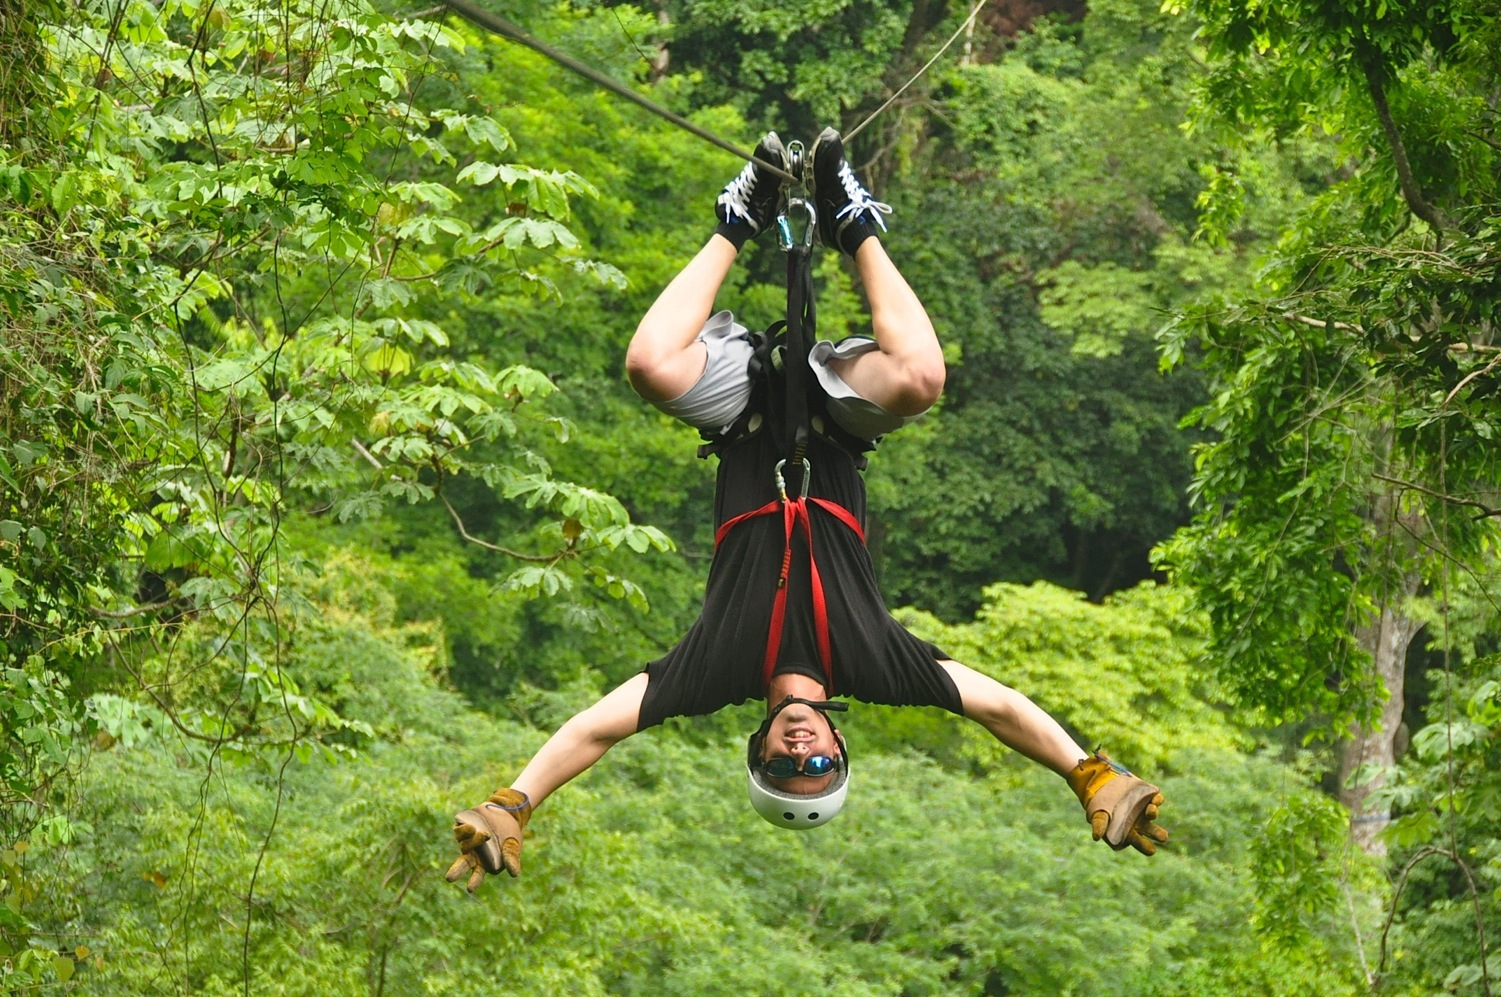 Ziplining on the way from Arenal to Manuel Antonio